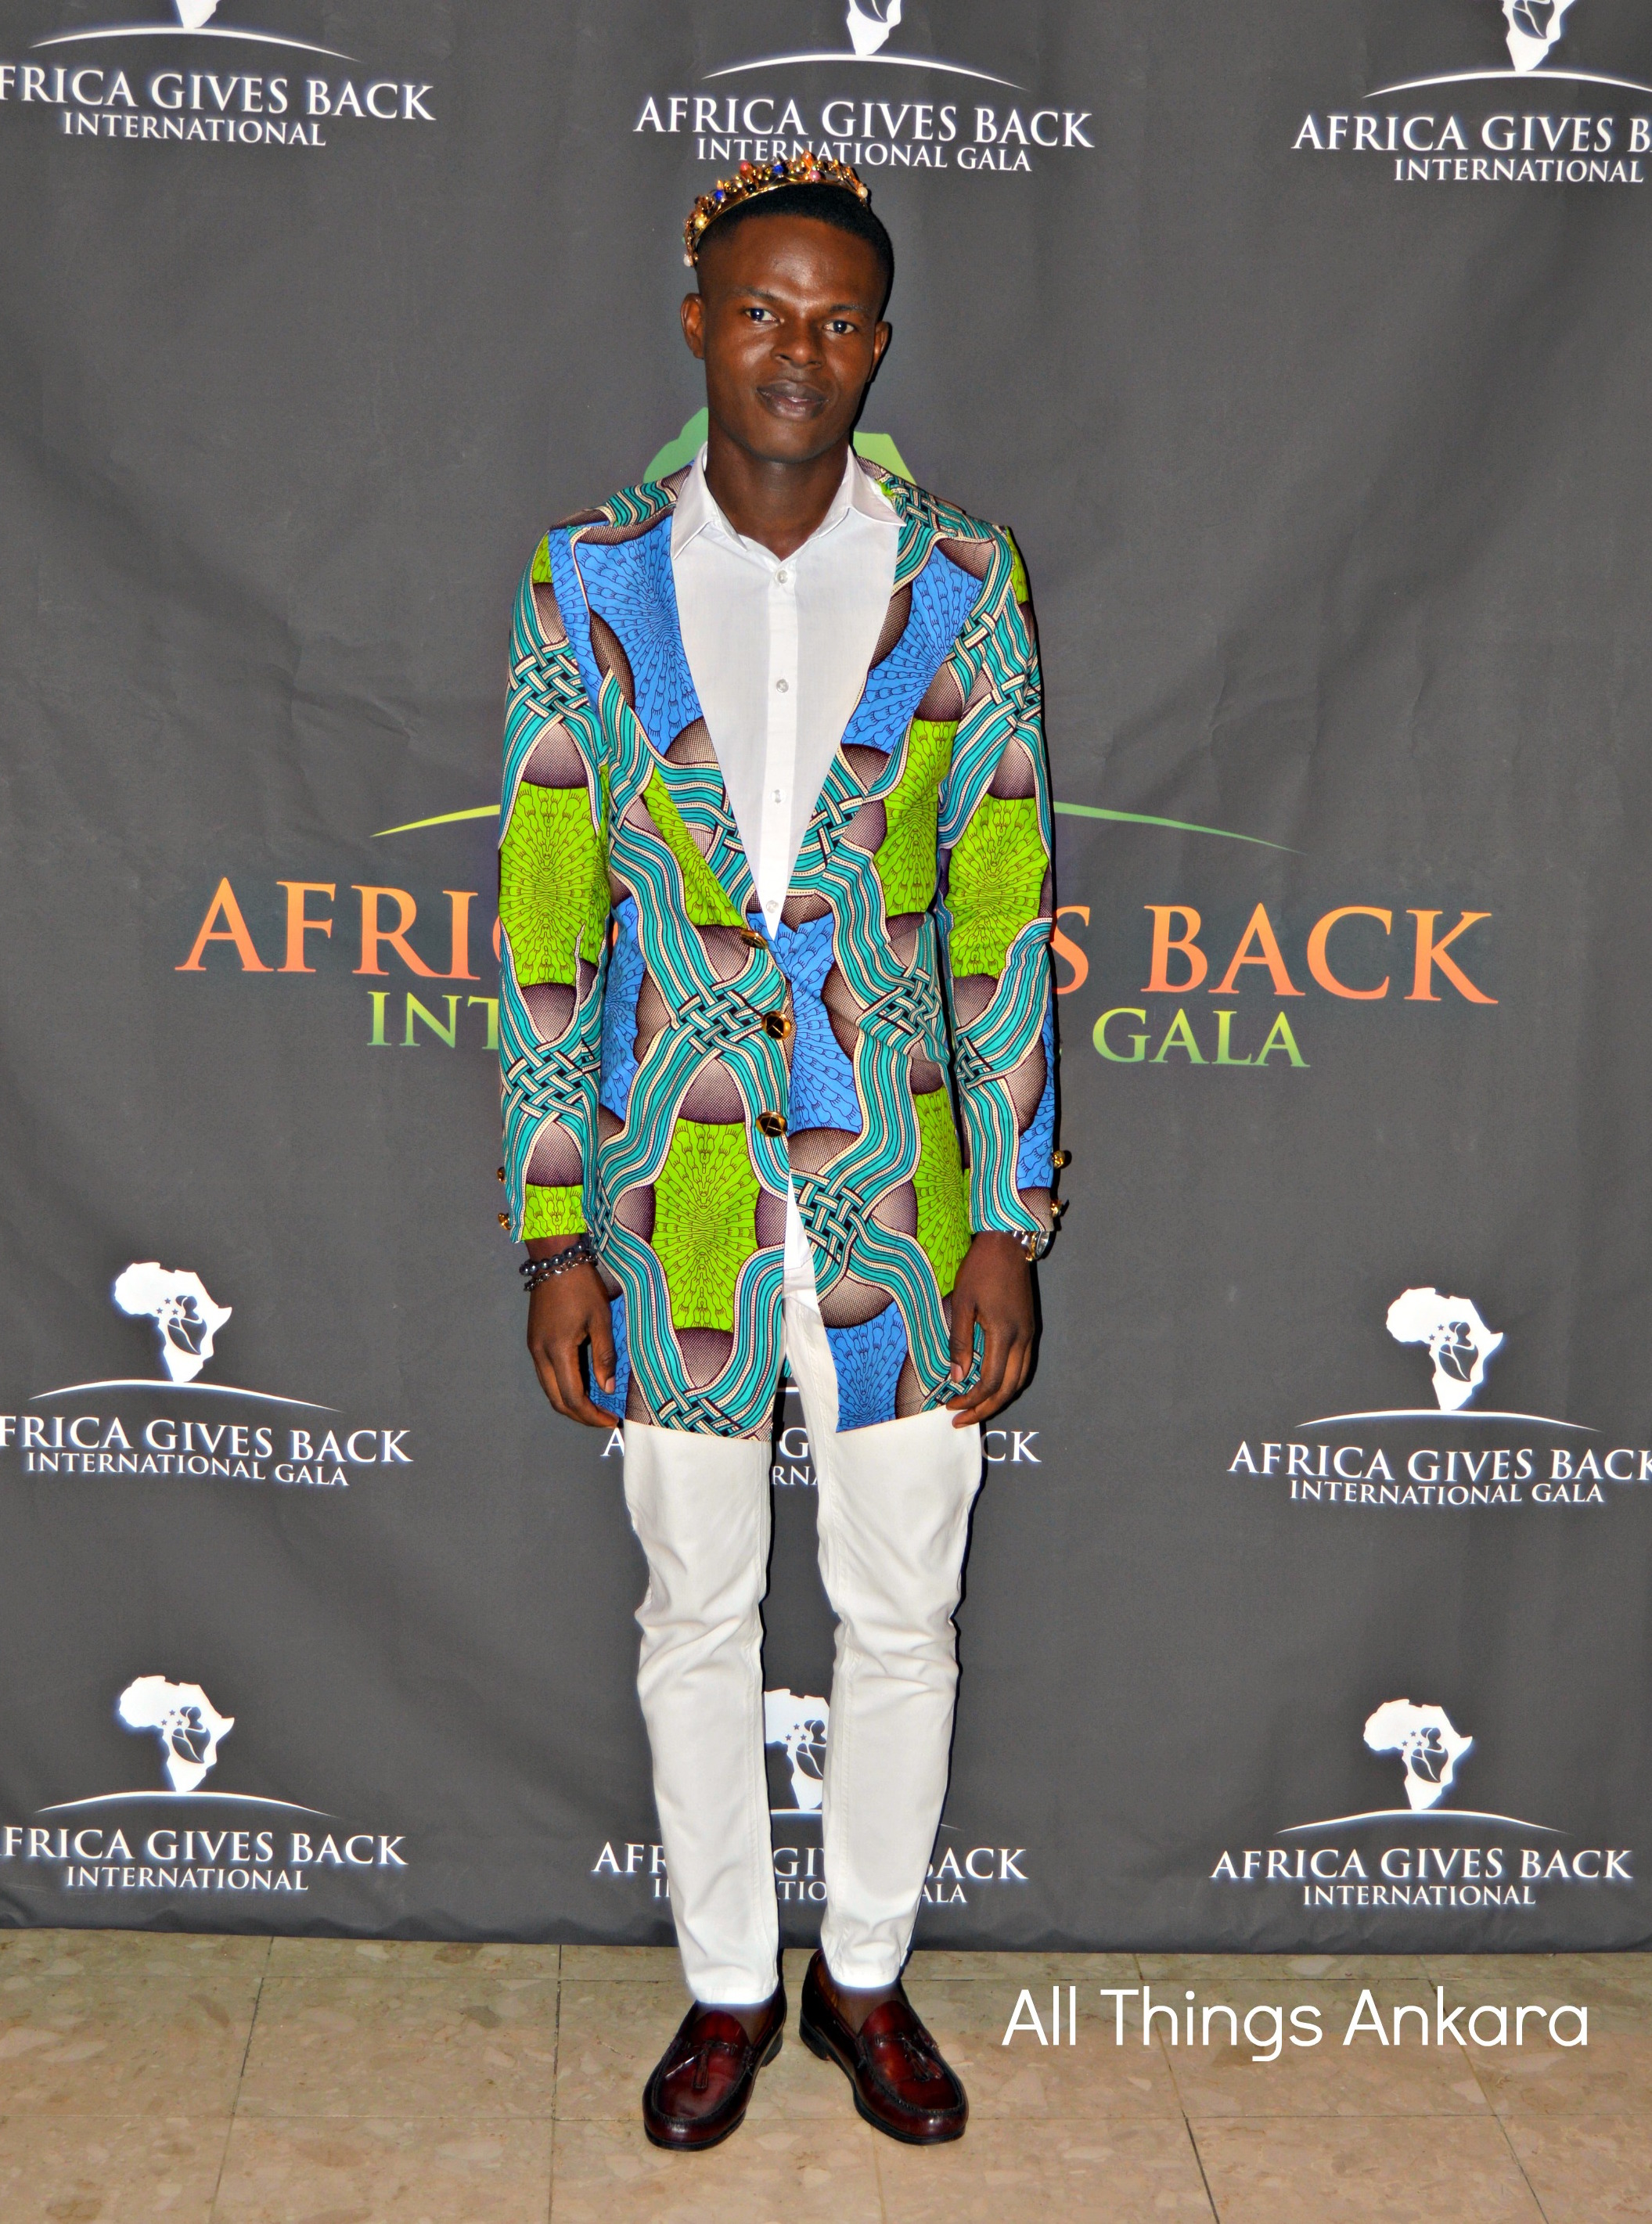 Gala-All Things Ankara's Best Dressed Men at Africa Gives Back International Gala 2016 2